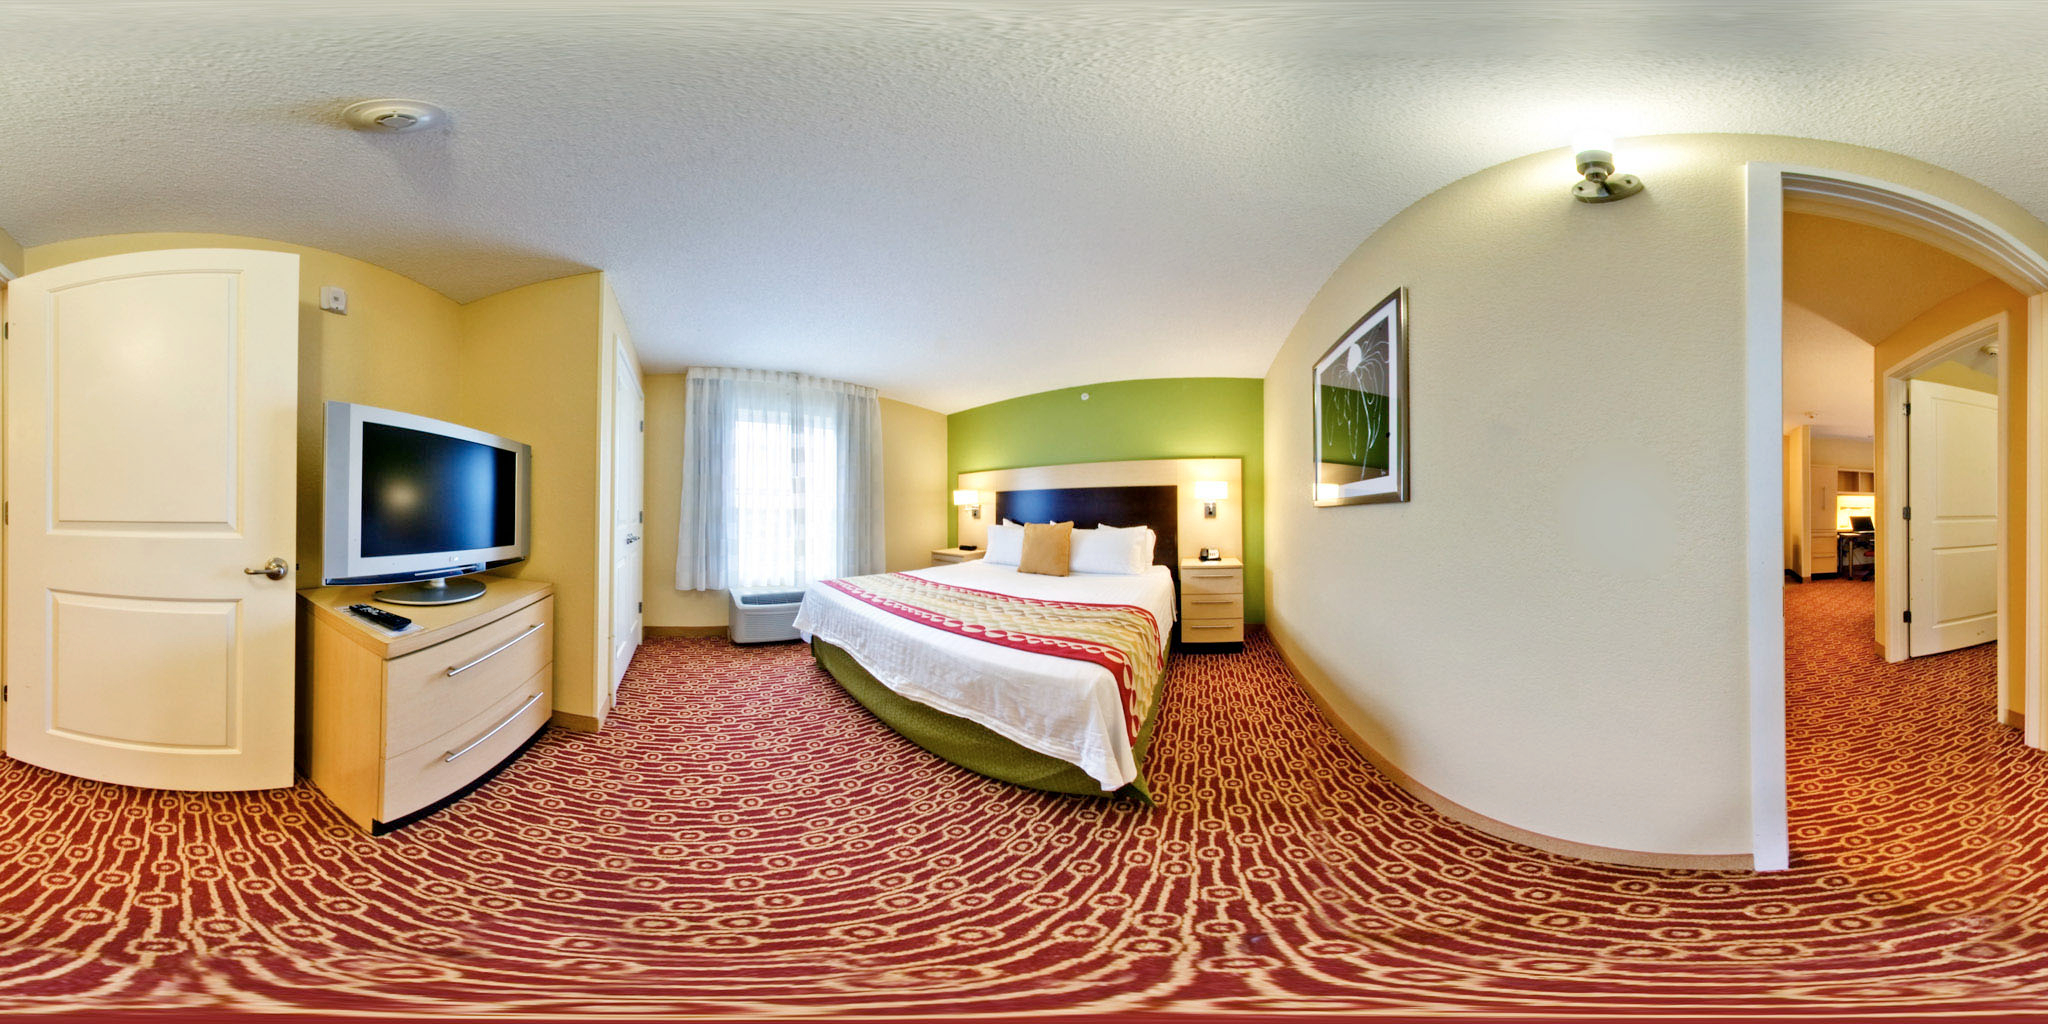 TownePlace Suites by Marriott Jacksonville image 3